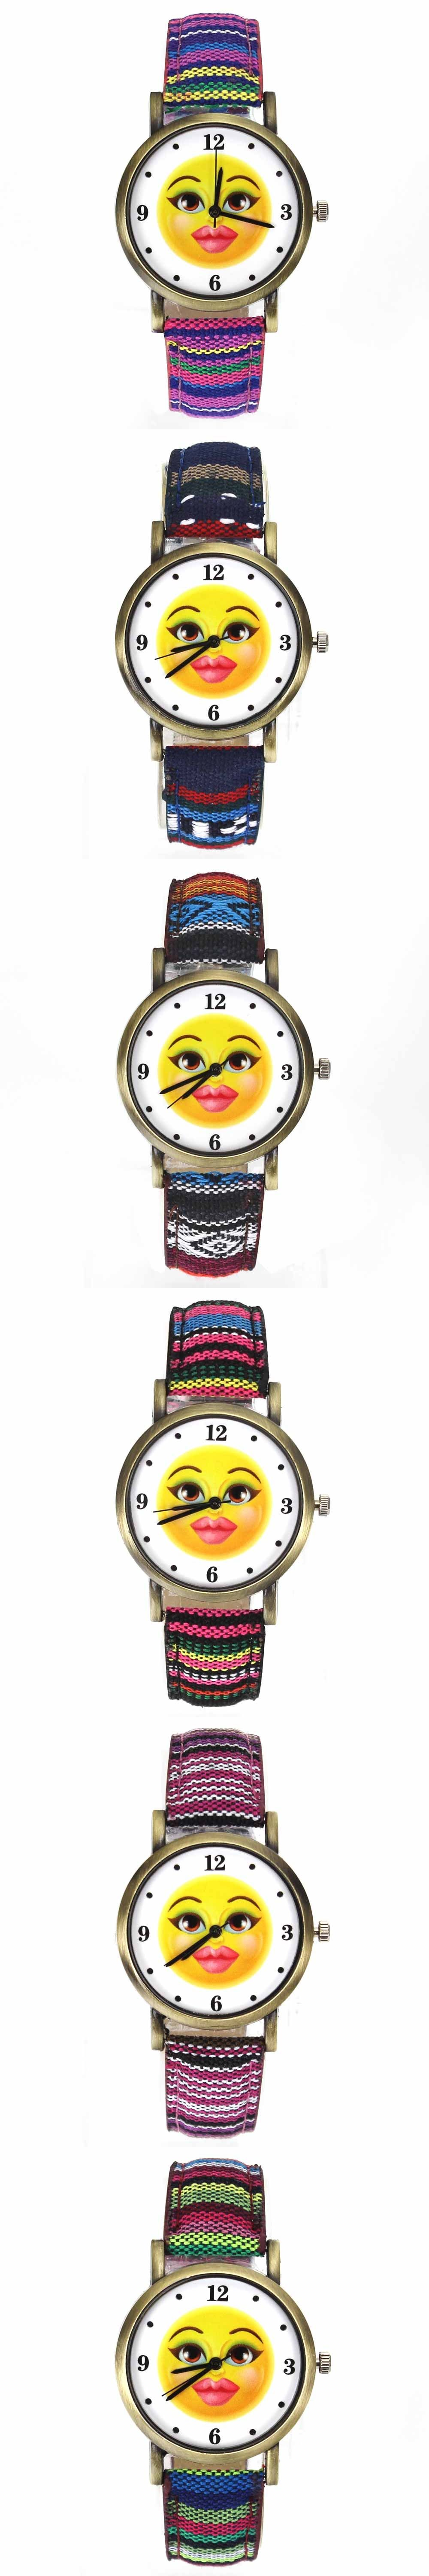 timeless women lyst canvas goldtone metallic g s yellow accessories gold watch in watches gucci